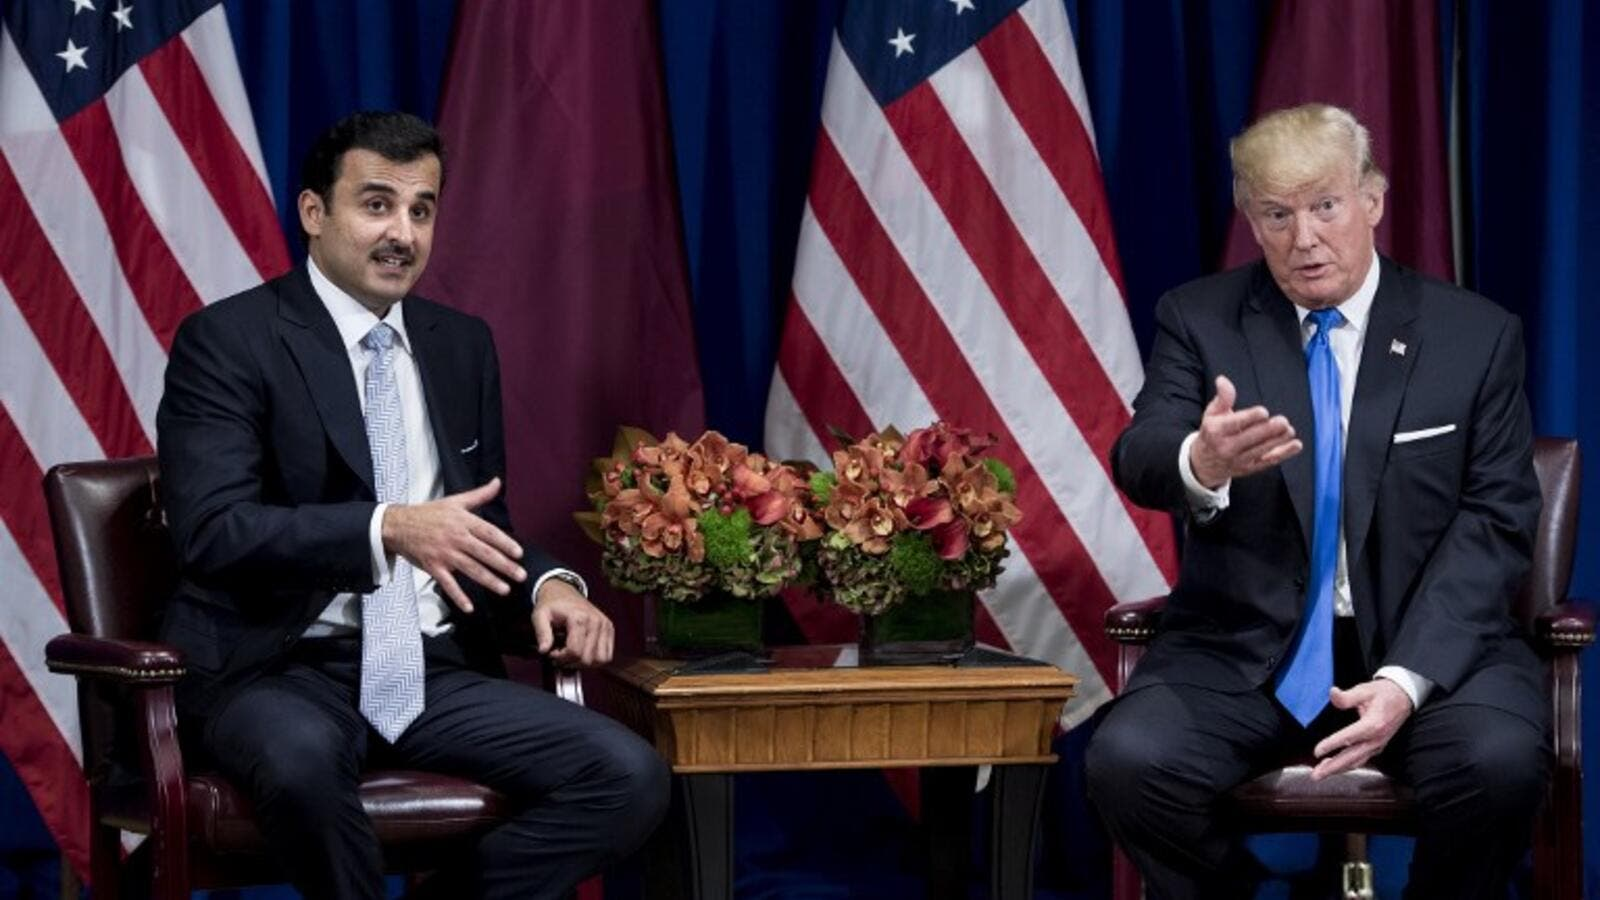 An awkward GIF has emerged from this excruciating meeting between US President Trump and Qatari Emir Sheikh Tamim bin Hamad Al Thani (AFP)